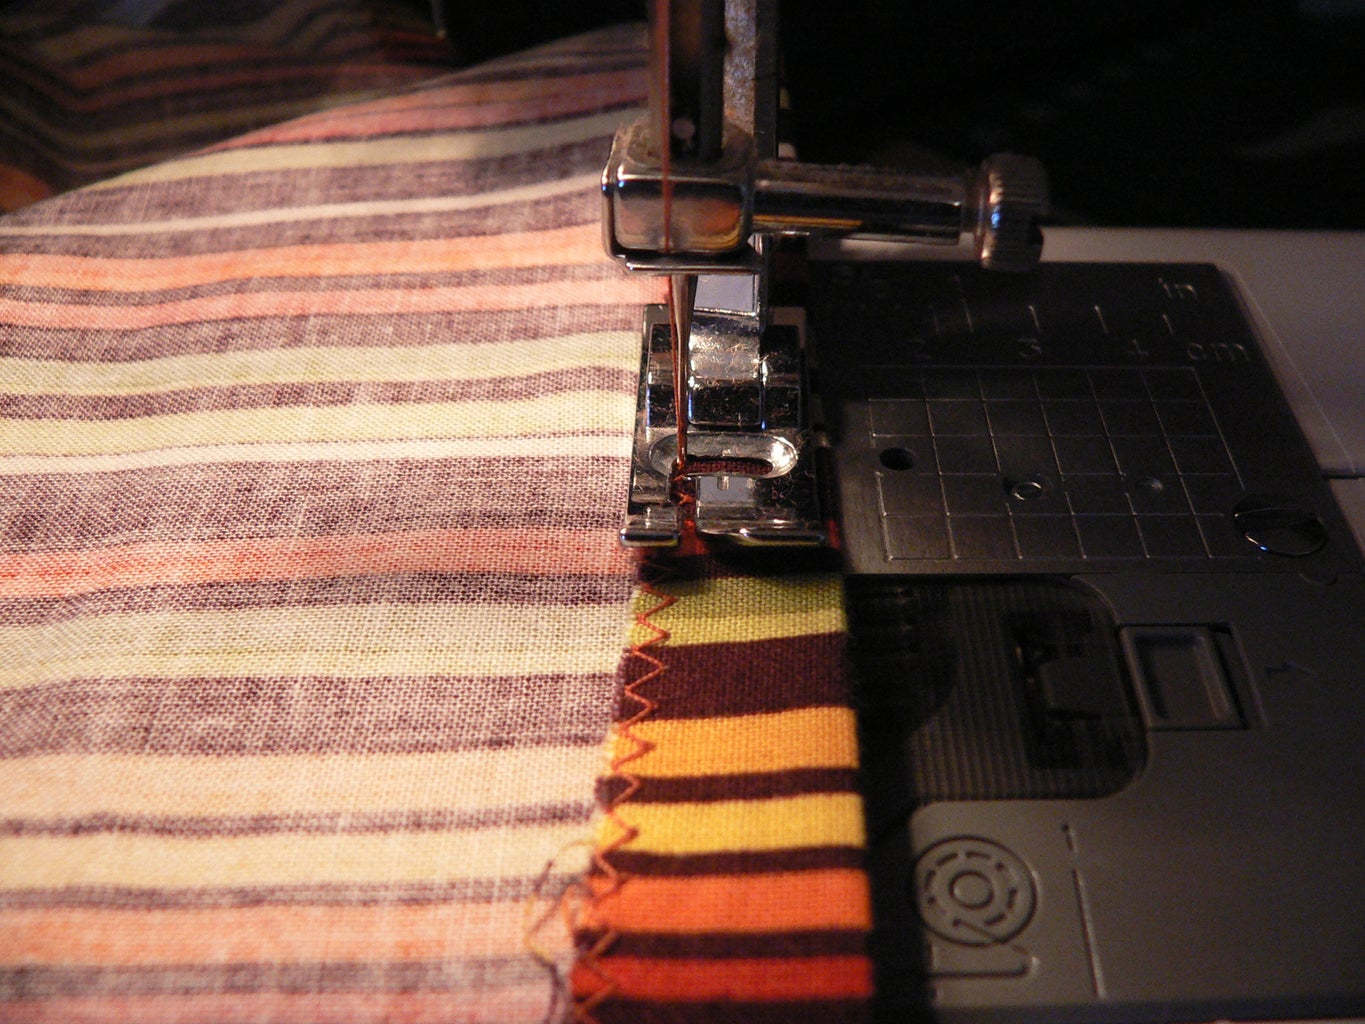 Sewing the Underskirt